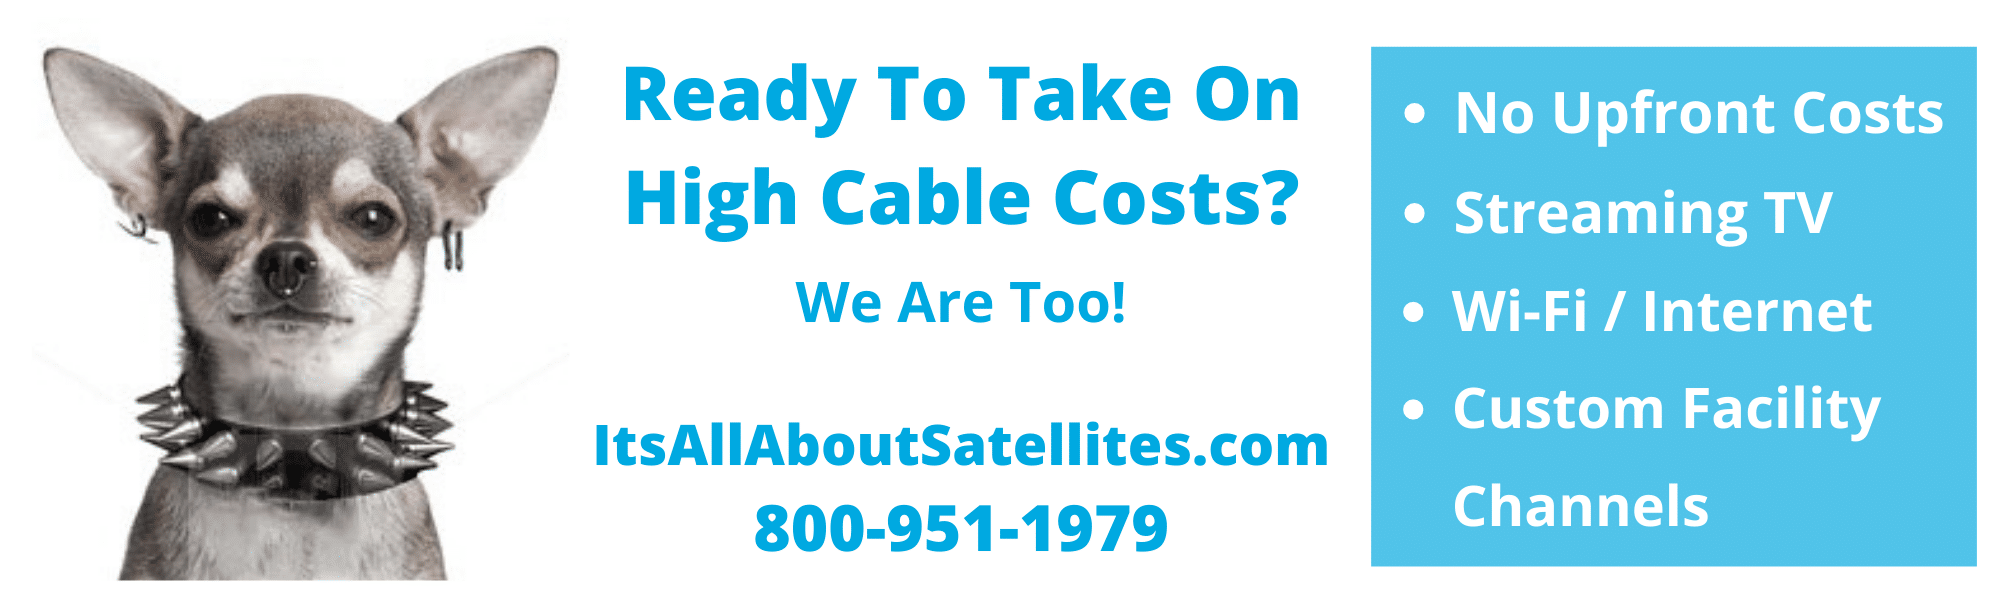 Its All About Satellites ad for the Arizona Healthcare Association Virtual Convention